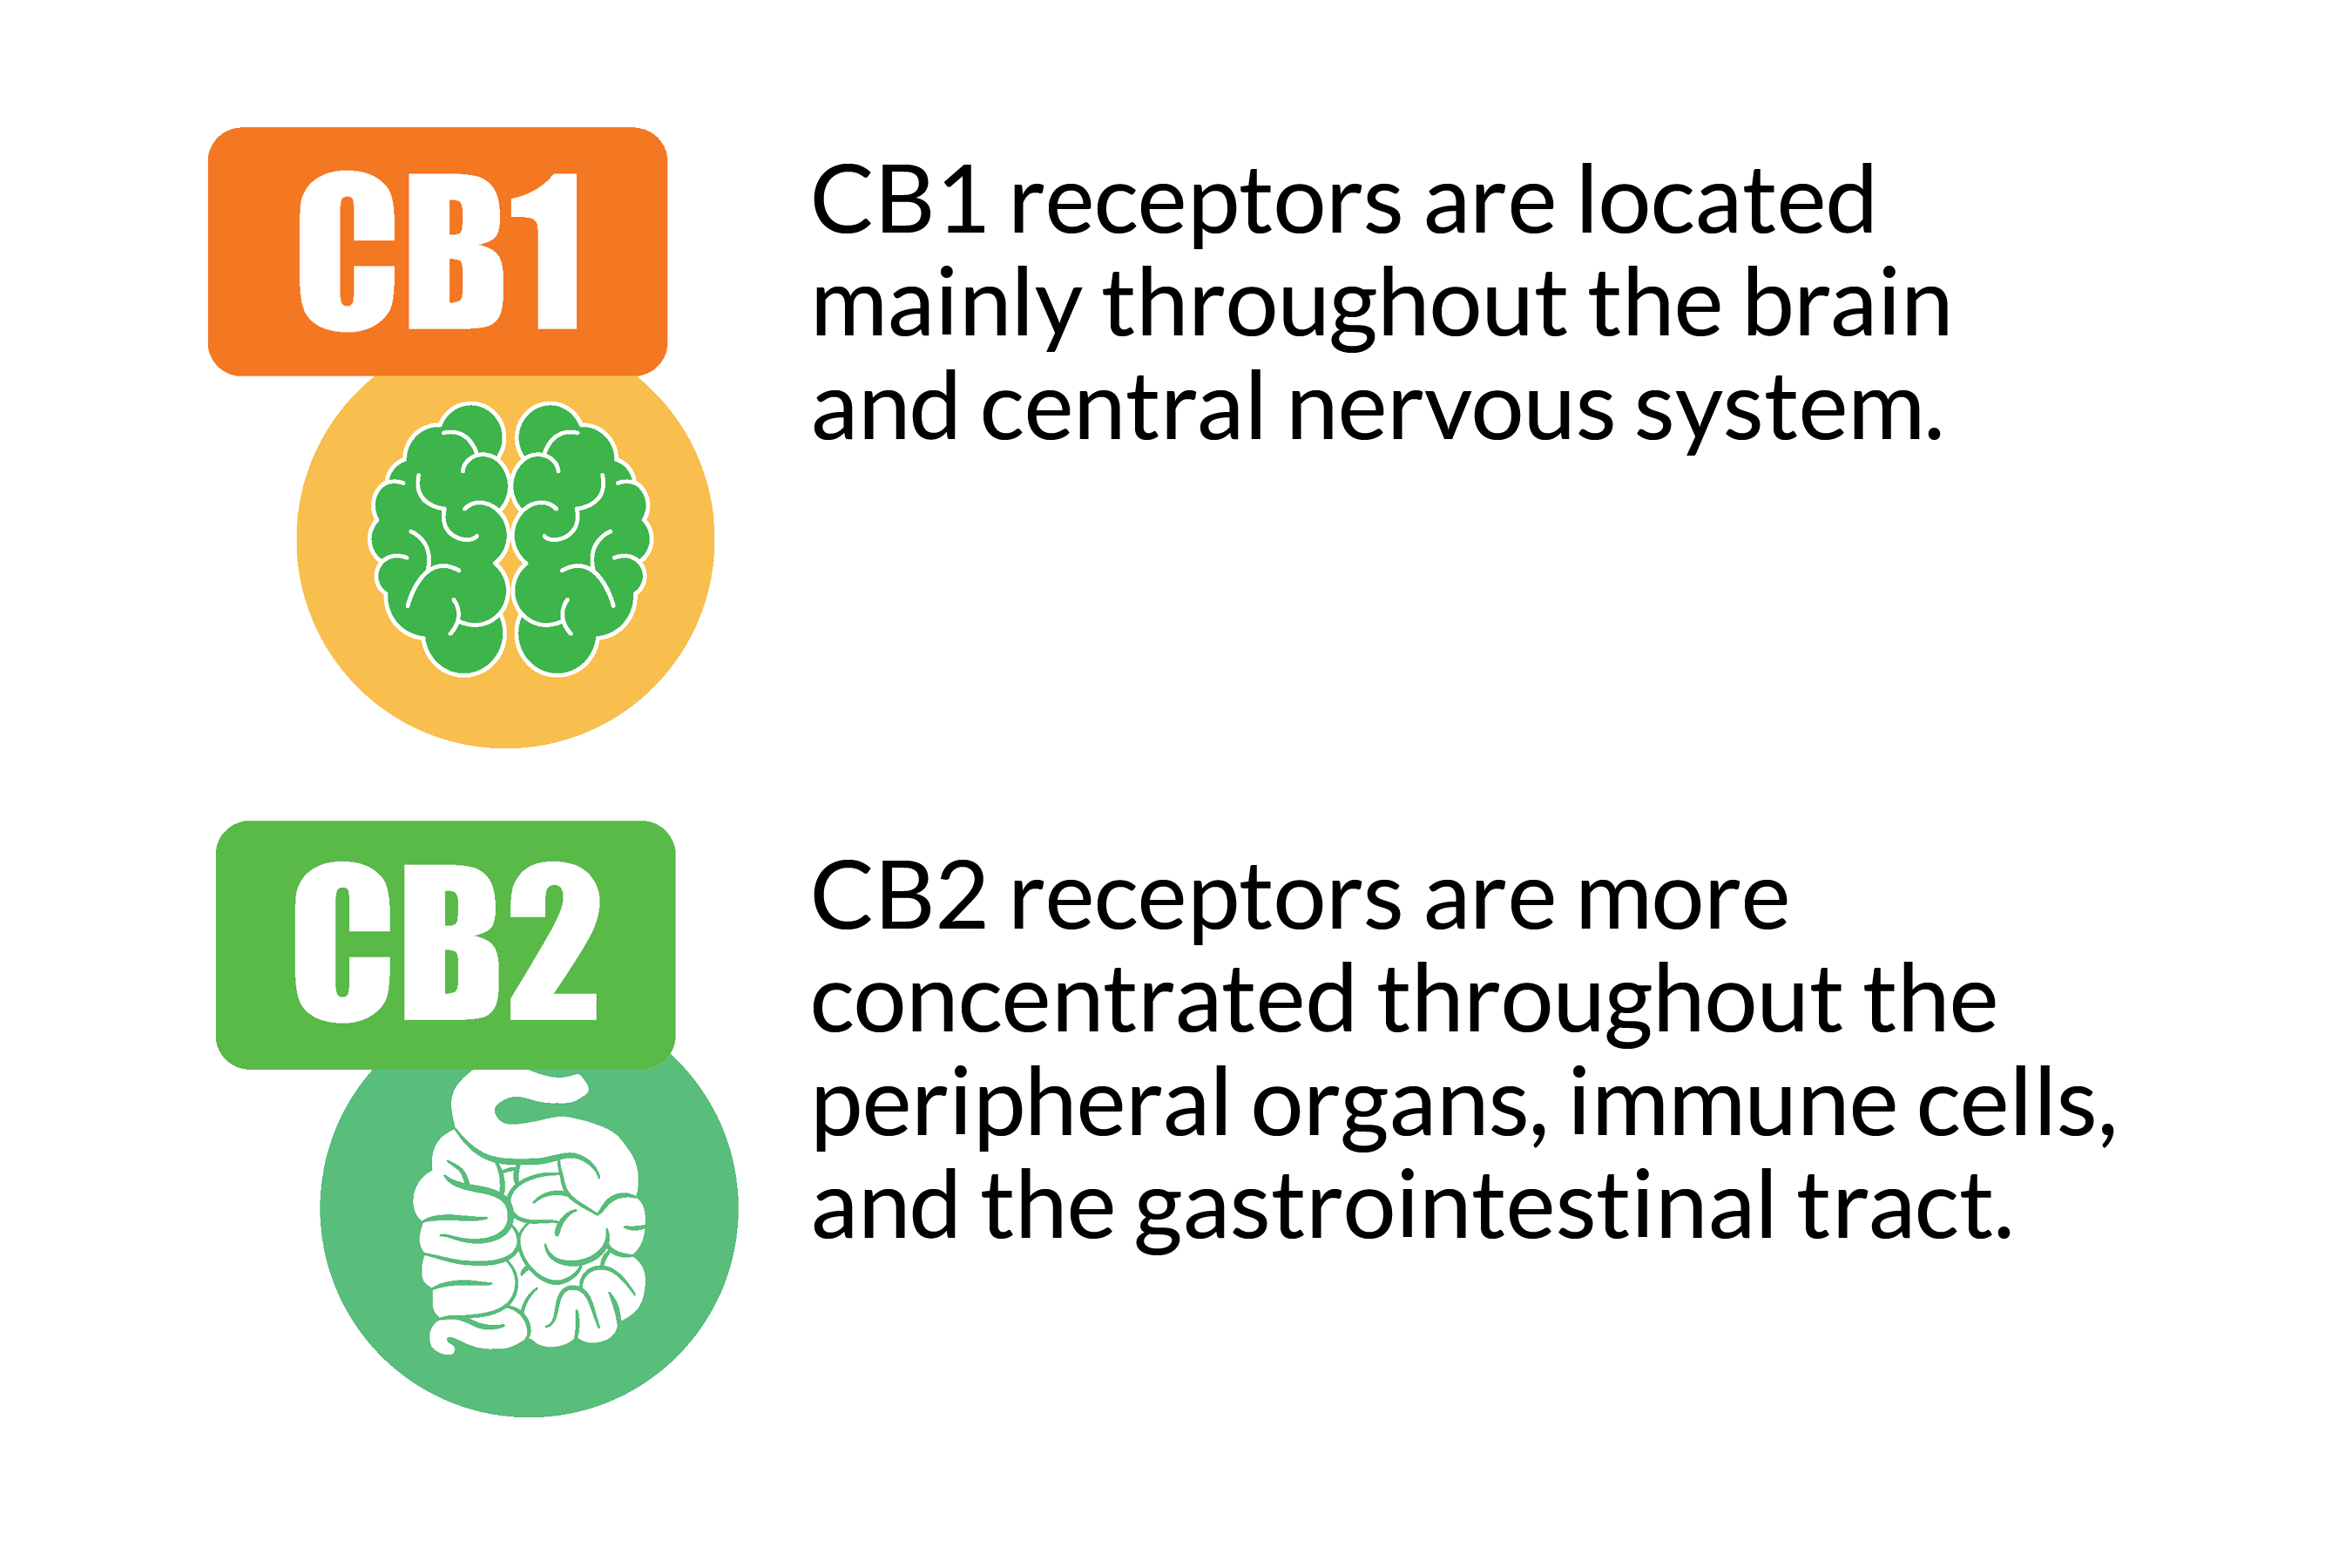 Endocannabinoid receptors in the body